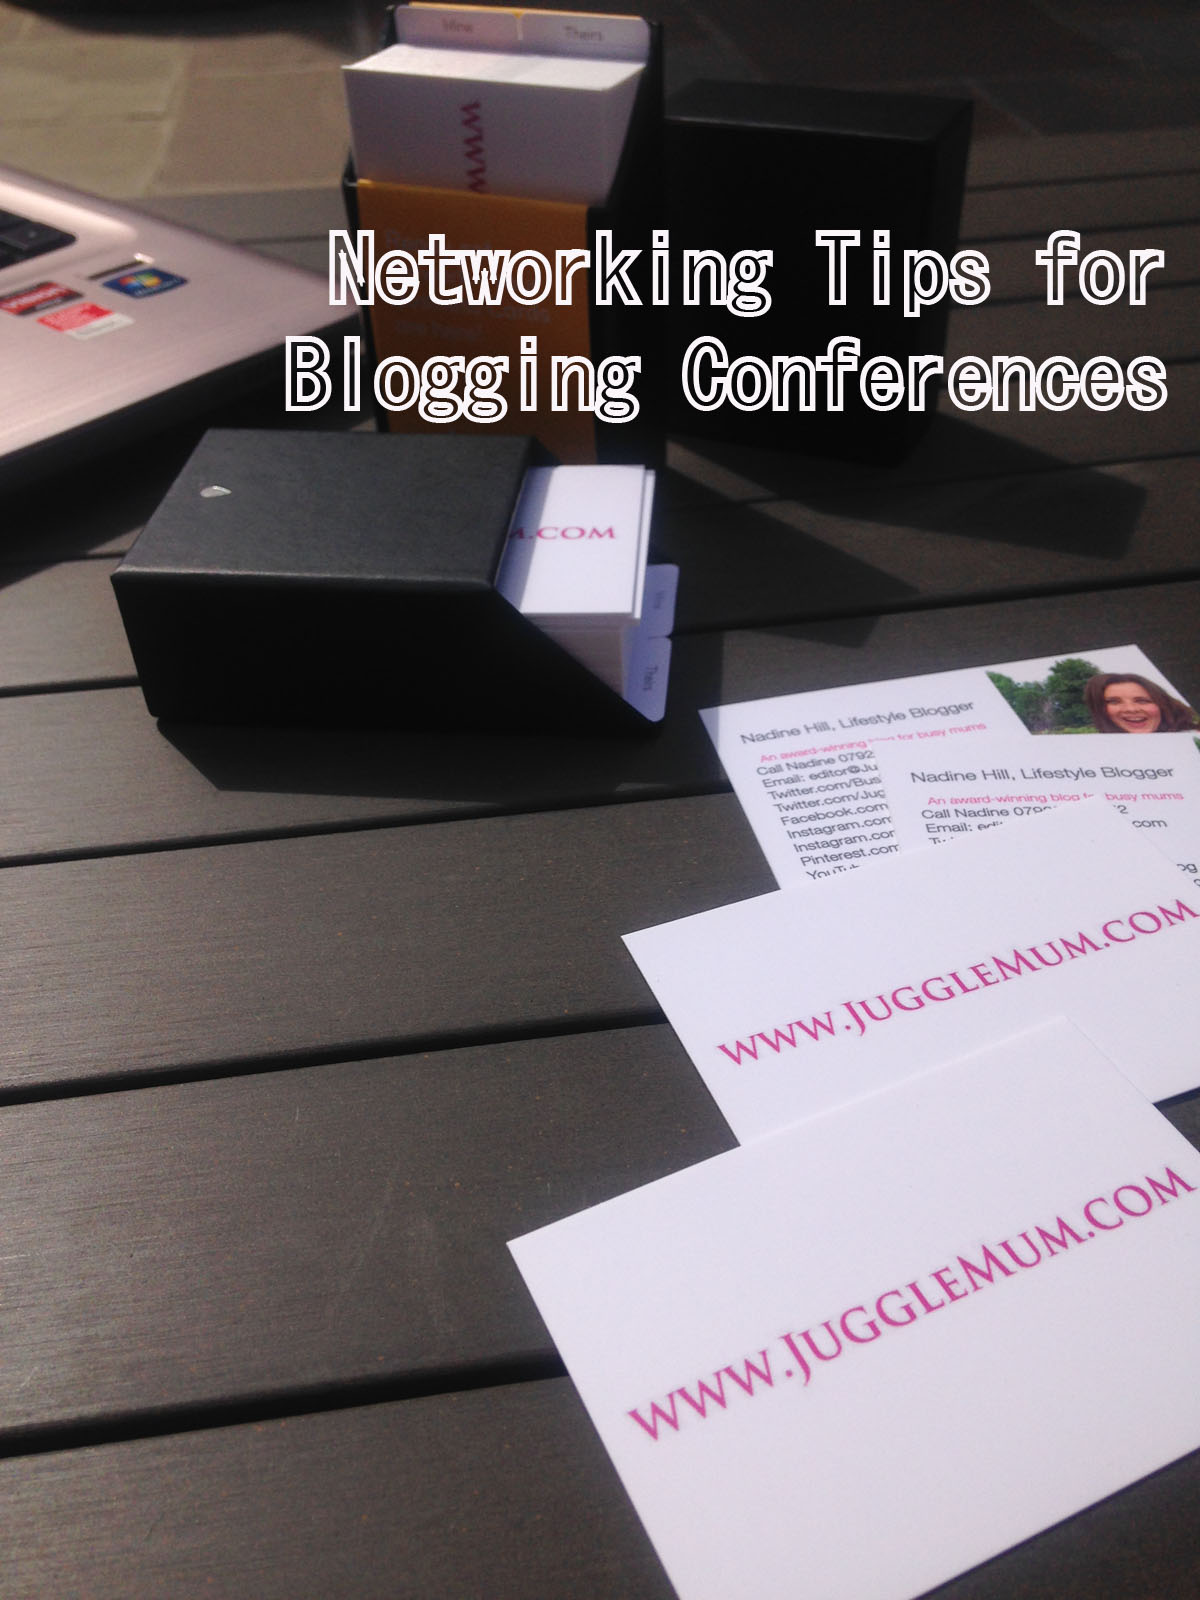 Networking Tips for Blogging Conferences